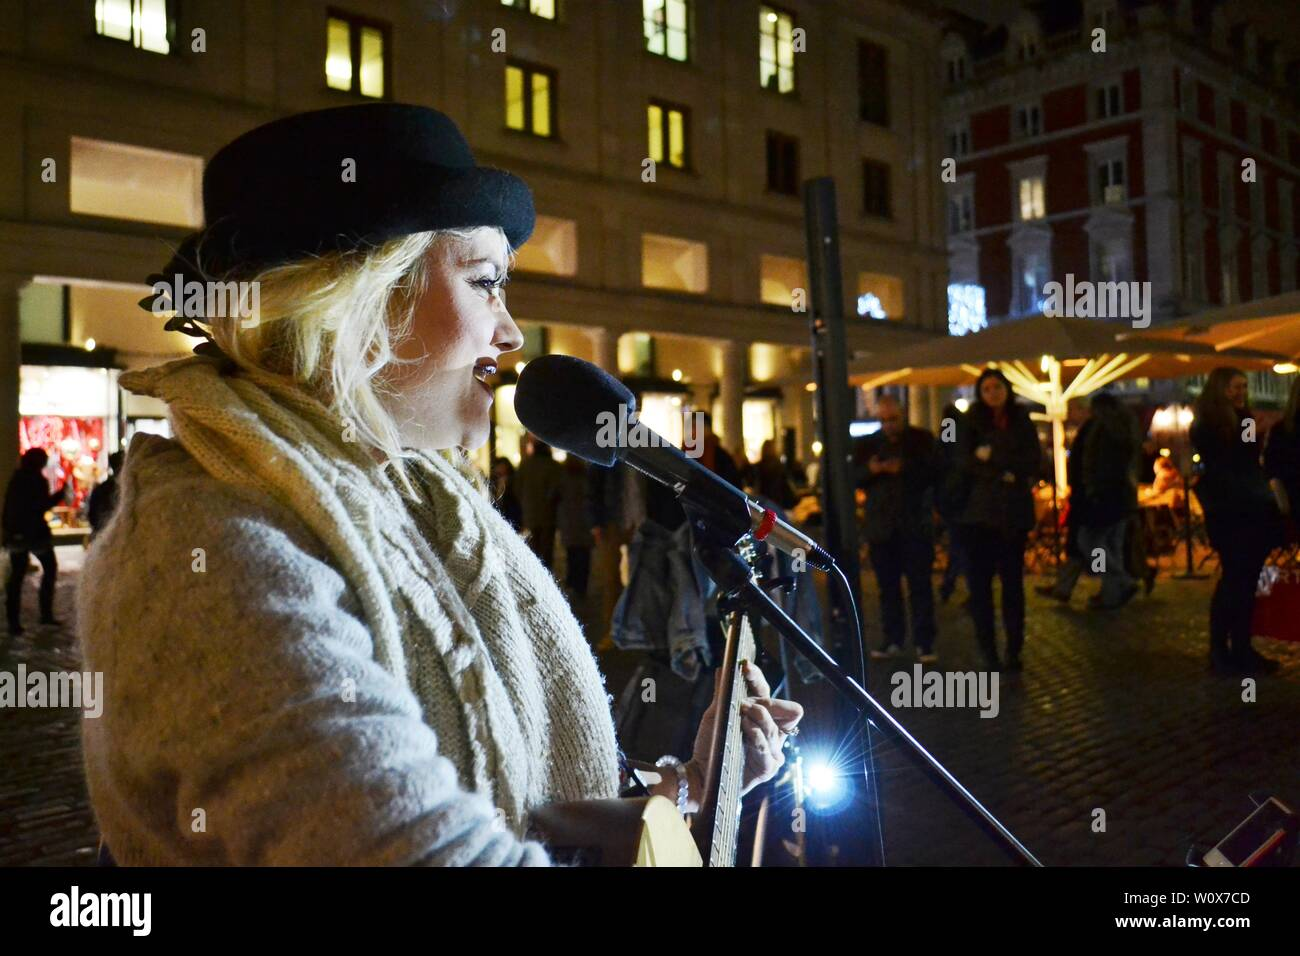 London/UK - November 27, 2013: London singer, guitarist and song writer Sammie Jay singing by night at the Covent garden square during Christmas. Stock Photo